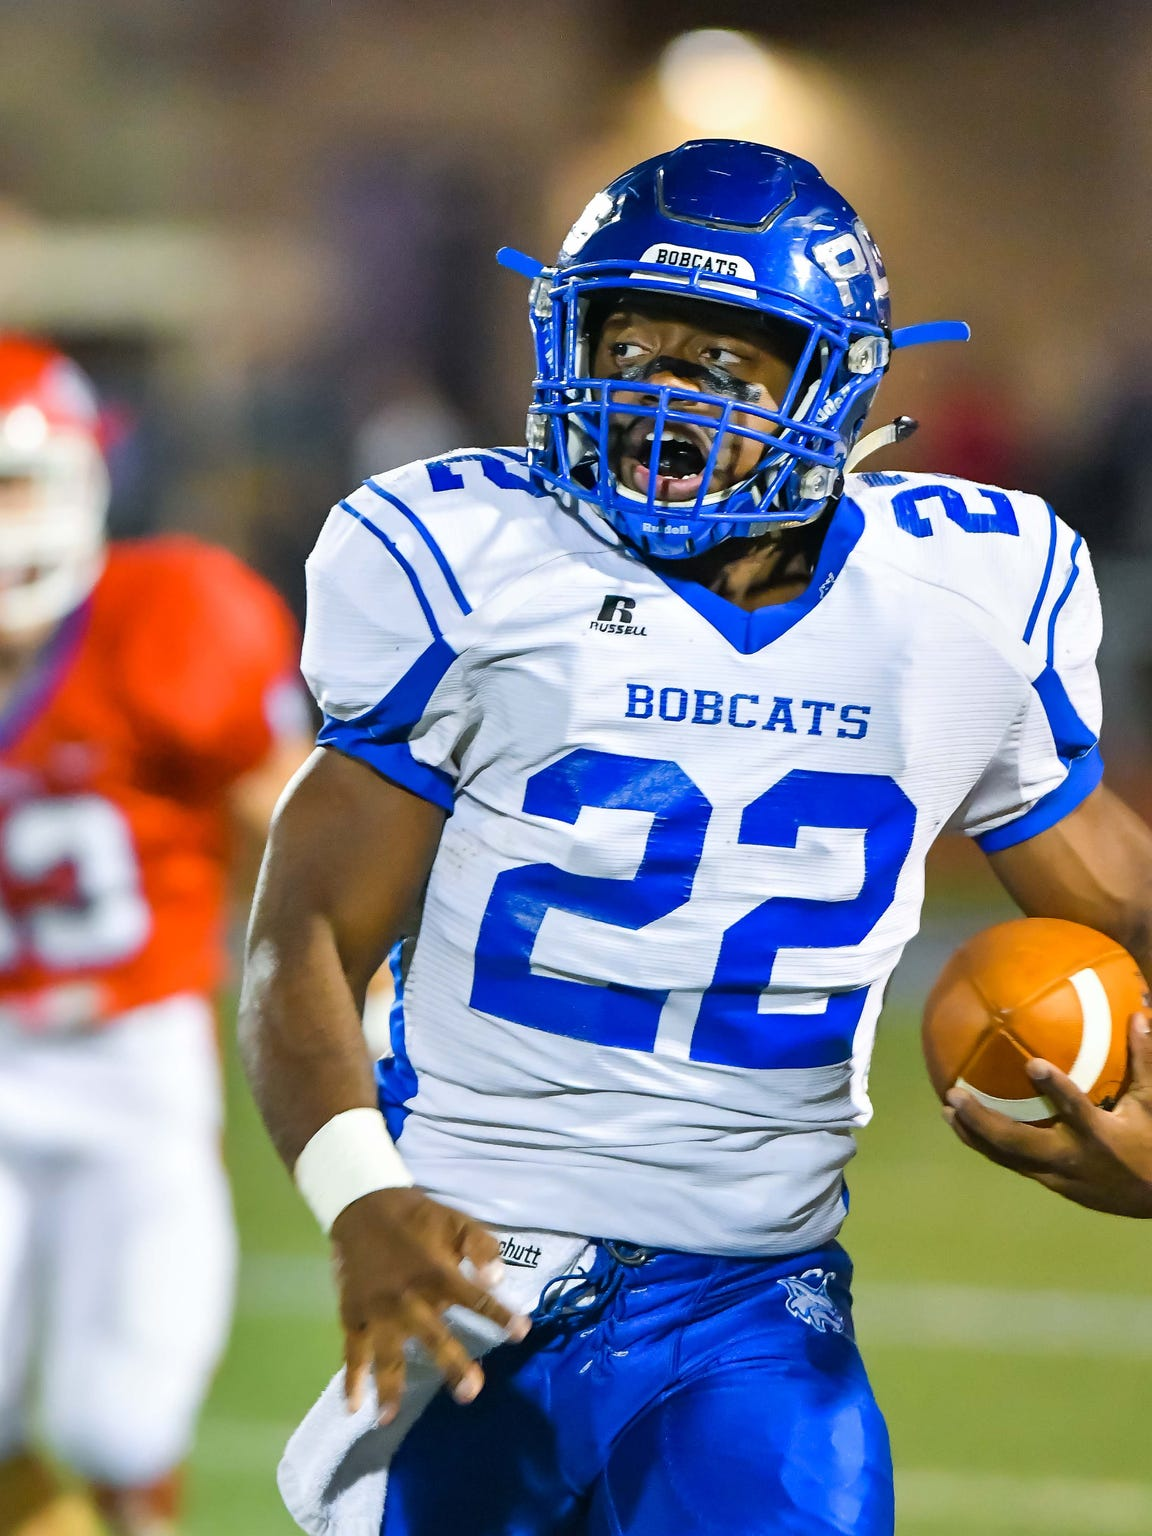 Presbyterian Christian School running back Isaiah Woullard